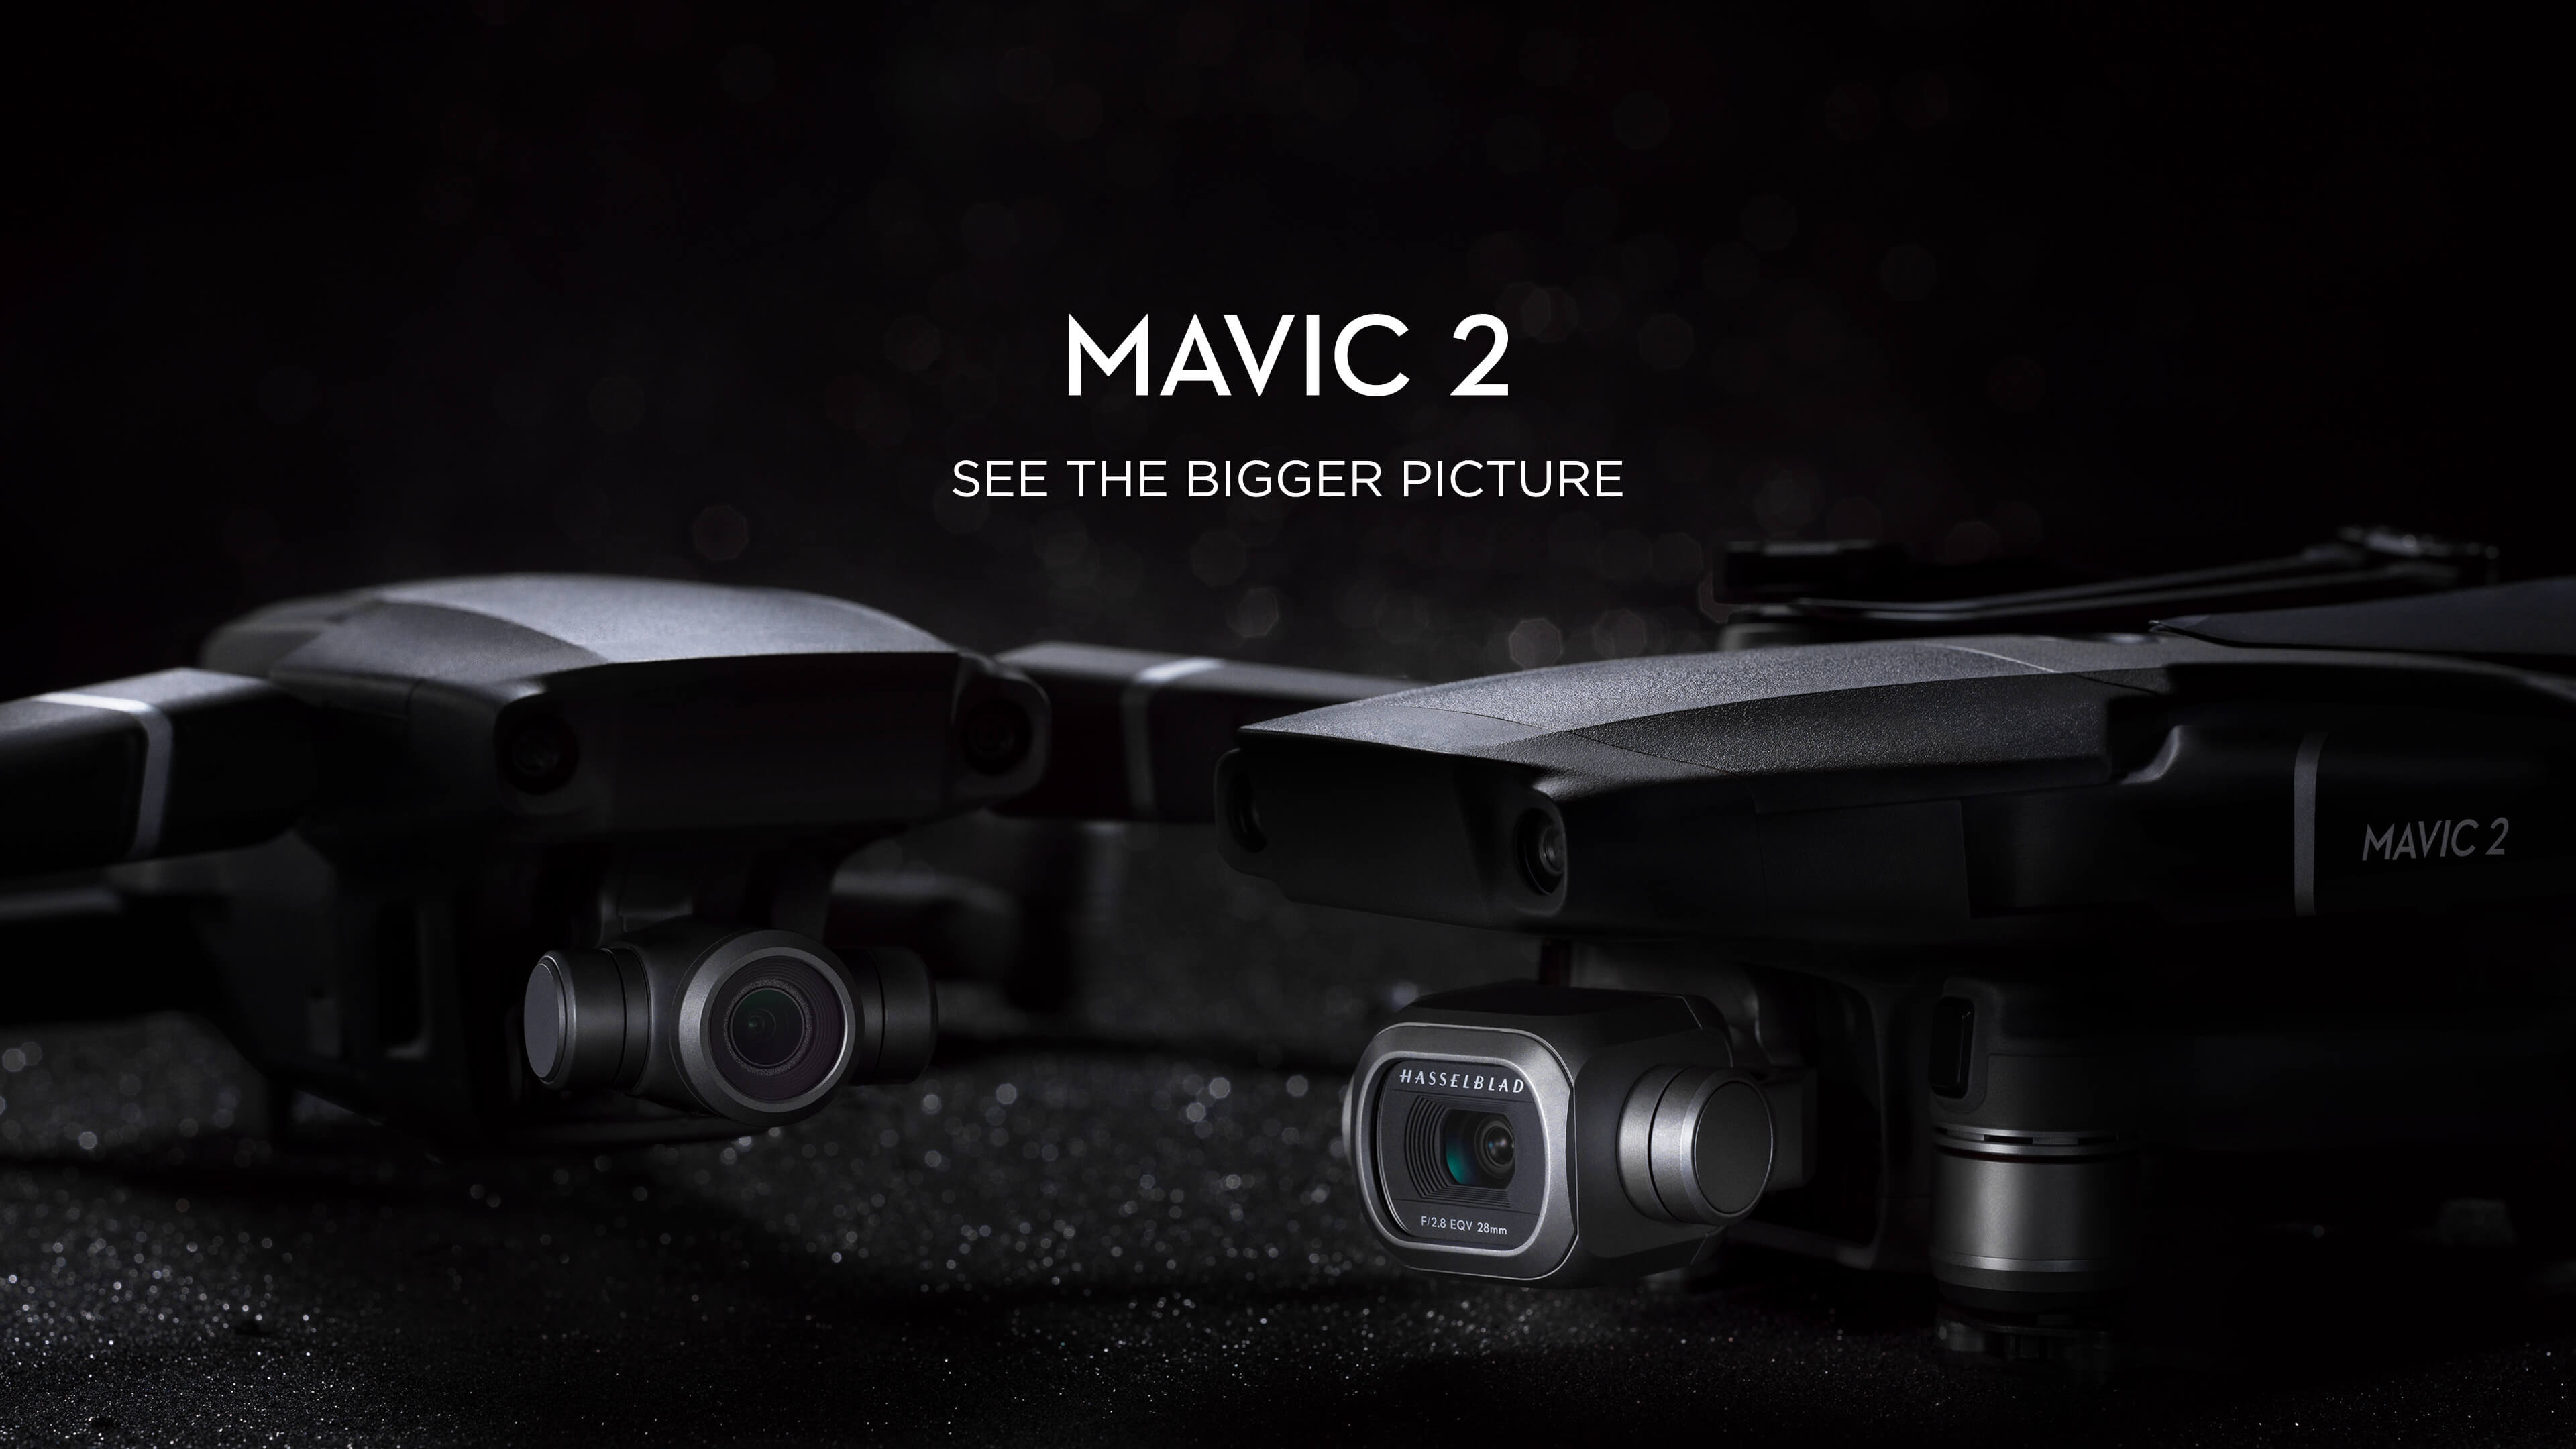 Mavic 2 vs Mavic Pro: What's New and Should I Upgrade? - DJI Guides